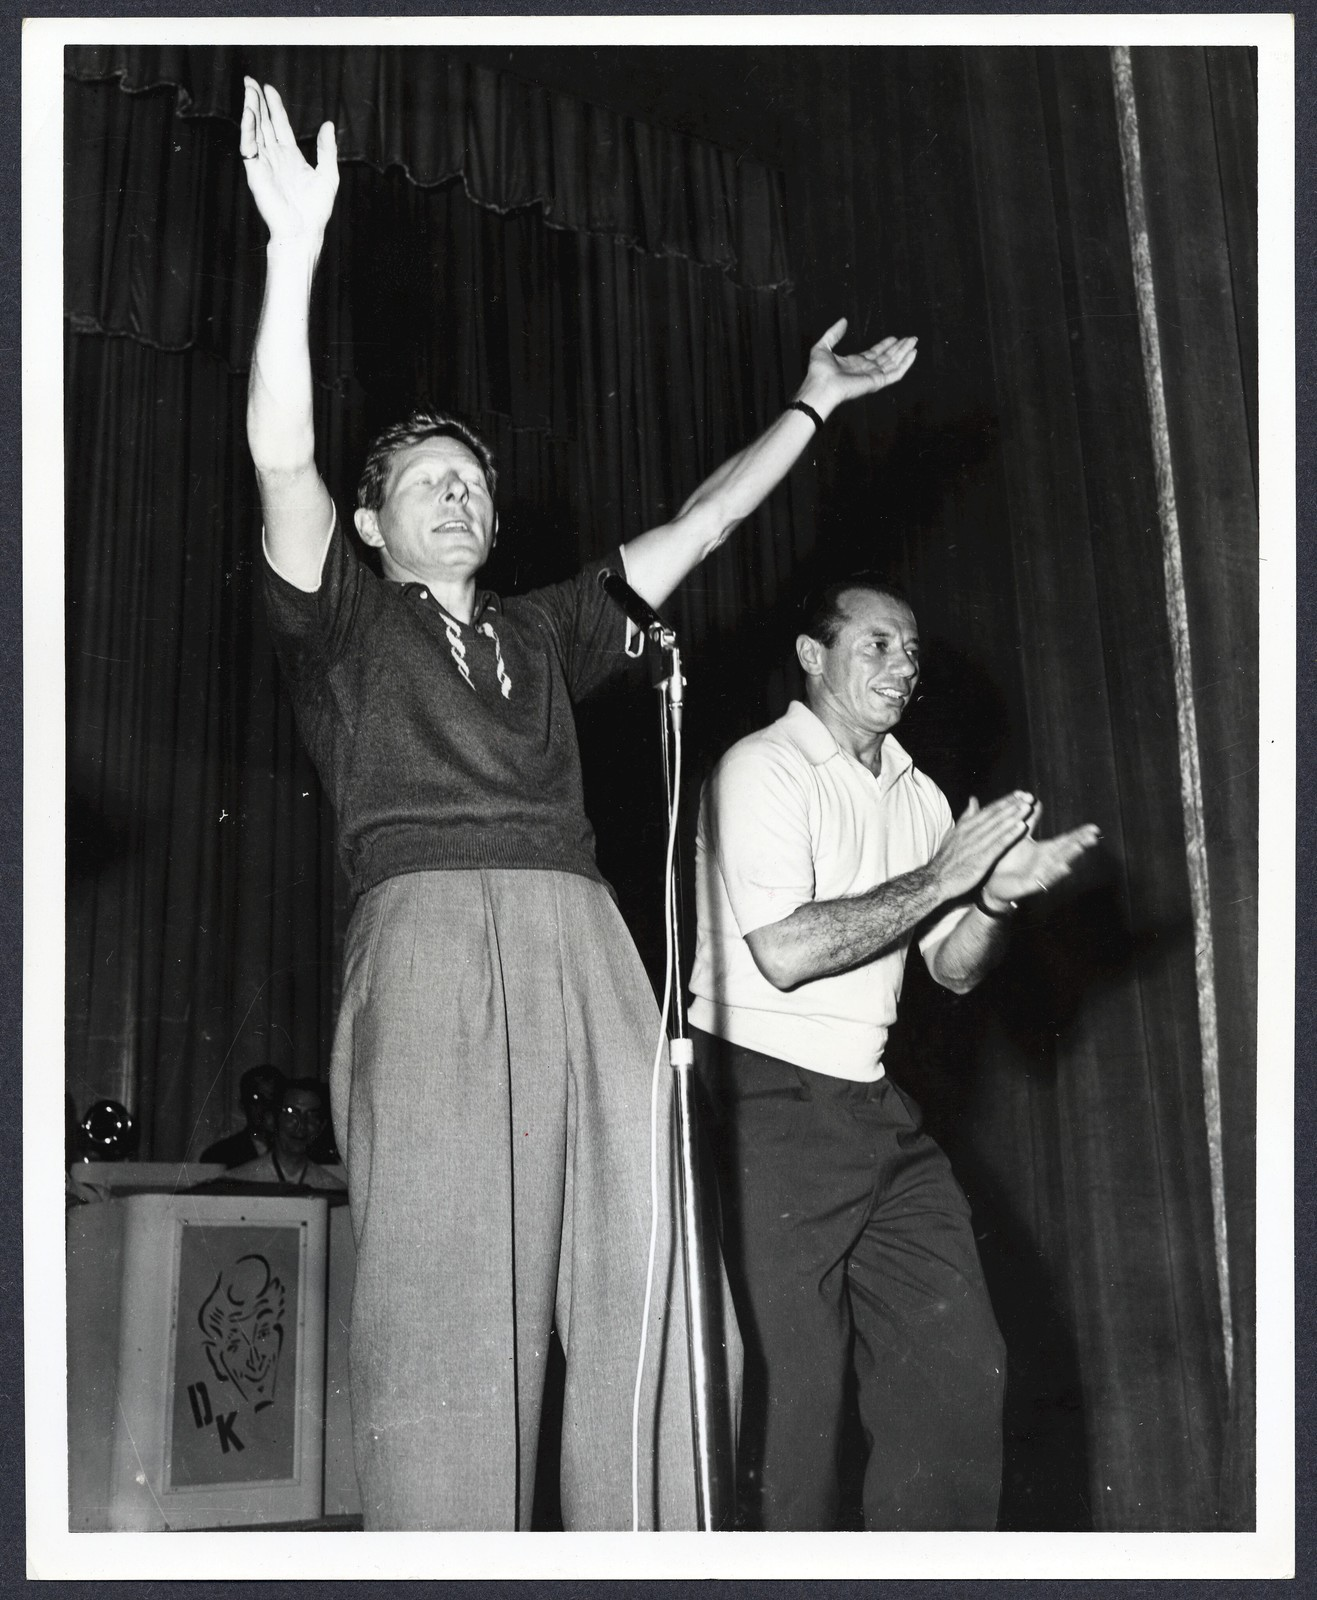 [ Danny Kaye, onstage, his eyes closed and arms raised, and unknown man clapping]